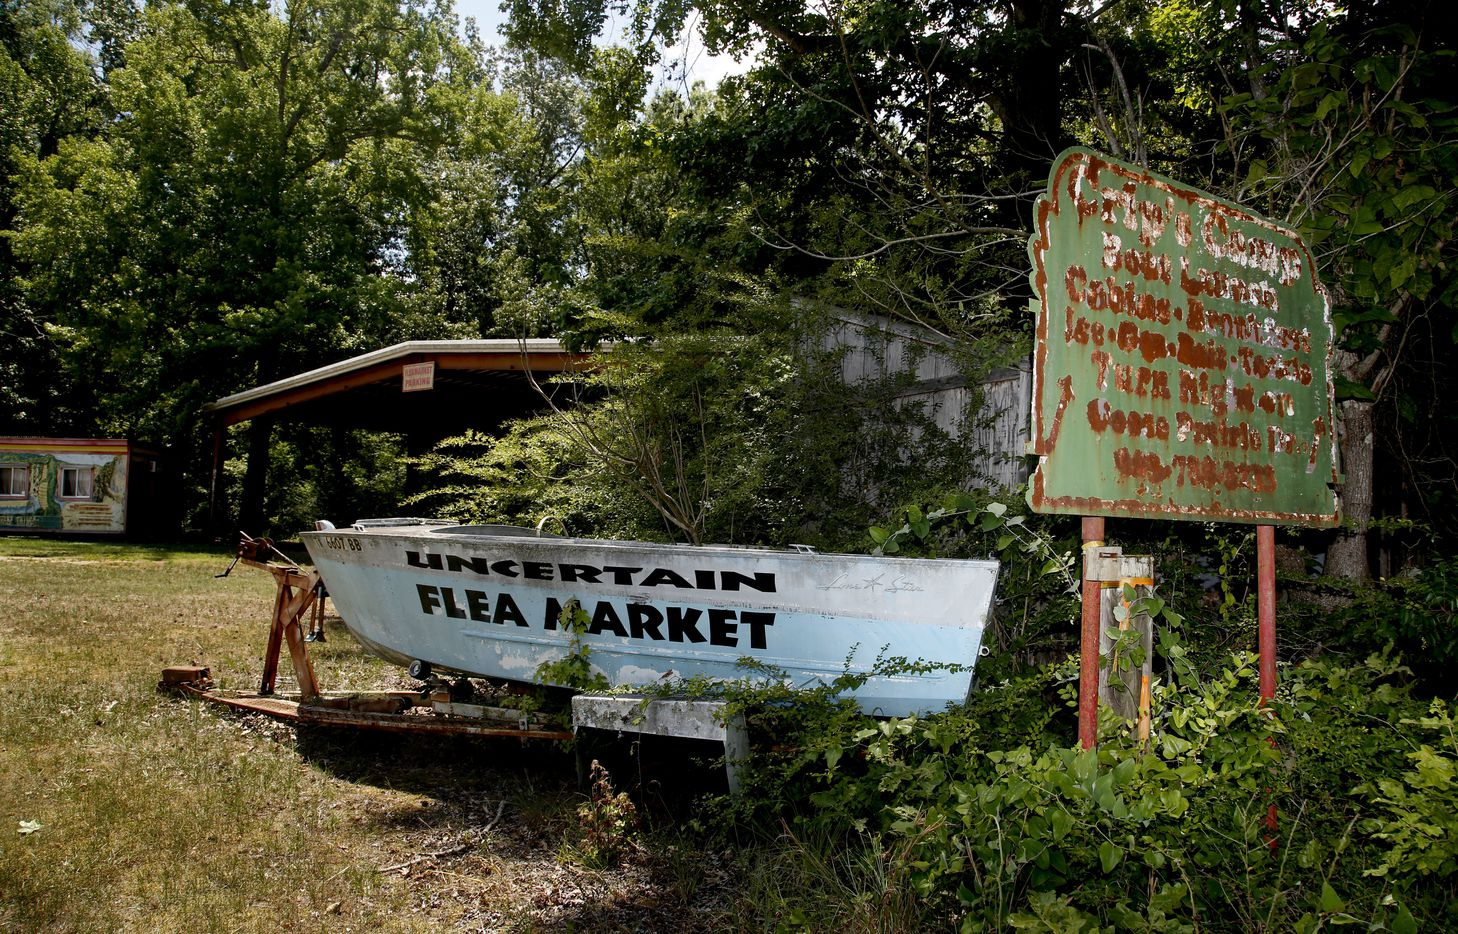 A faded sign advertising Crip's Camp stands beside an old boat advertising a flea market across the road in Uncertain, Texas Tuesday June 26, 2018.